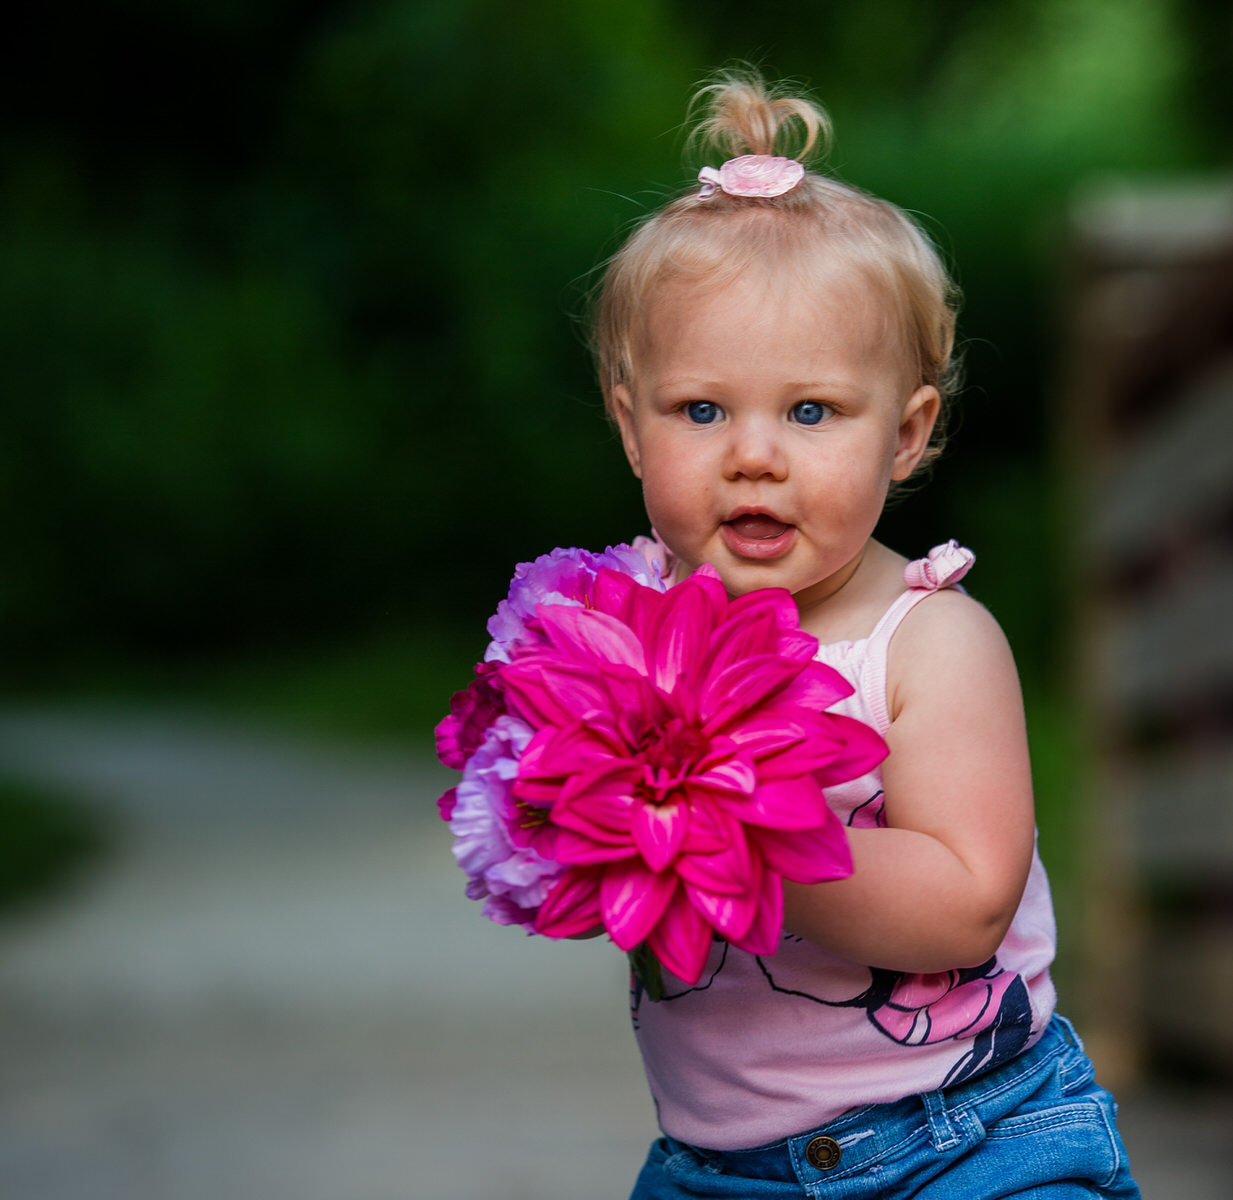 Child holds pink and purple flowers for her 1 year birthday portraits at Frontier Park in Erie, PA